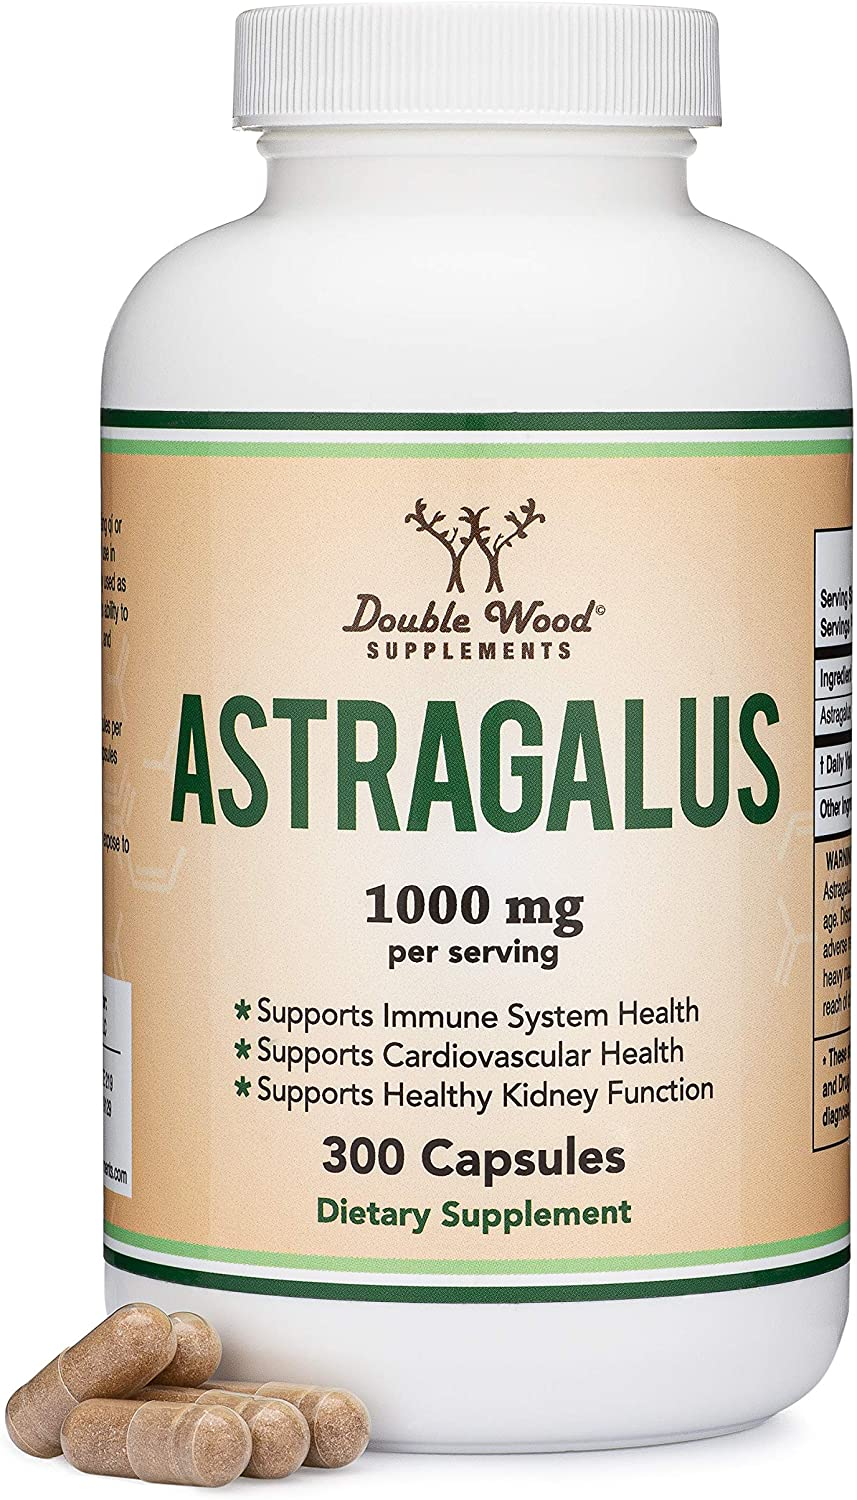 Astragalus Root Capsules - 1,000mg Per Serving (300 Capsules) High in Polysaccharides, Made in The USA for Aging, Cardiovascular, and Immune Support by Double Wood Supplements